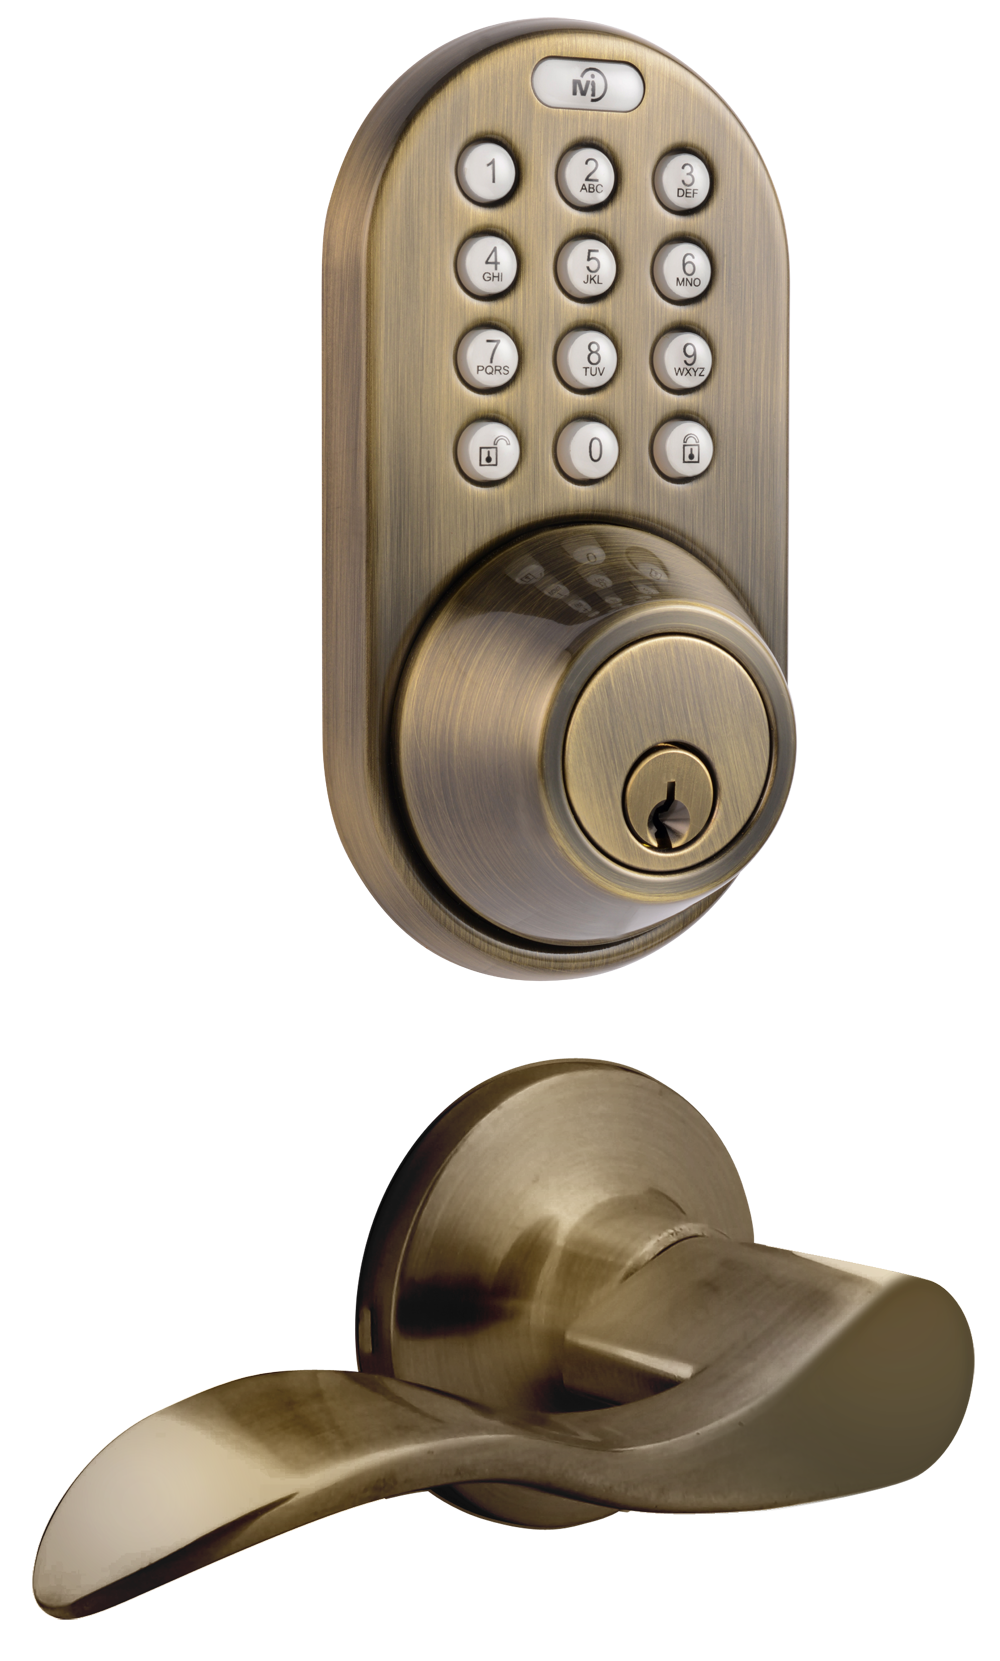 keyless entry deadbolt and lever handle door lock combo pack with electronic digital keypad